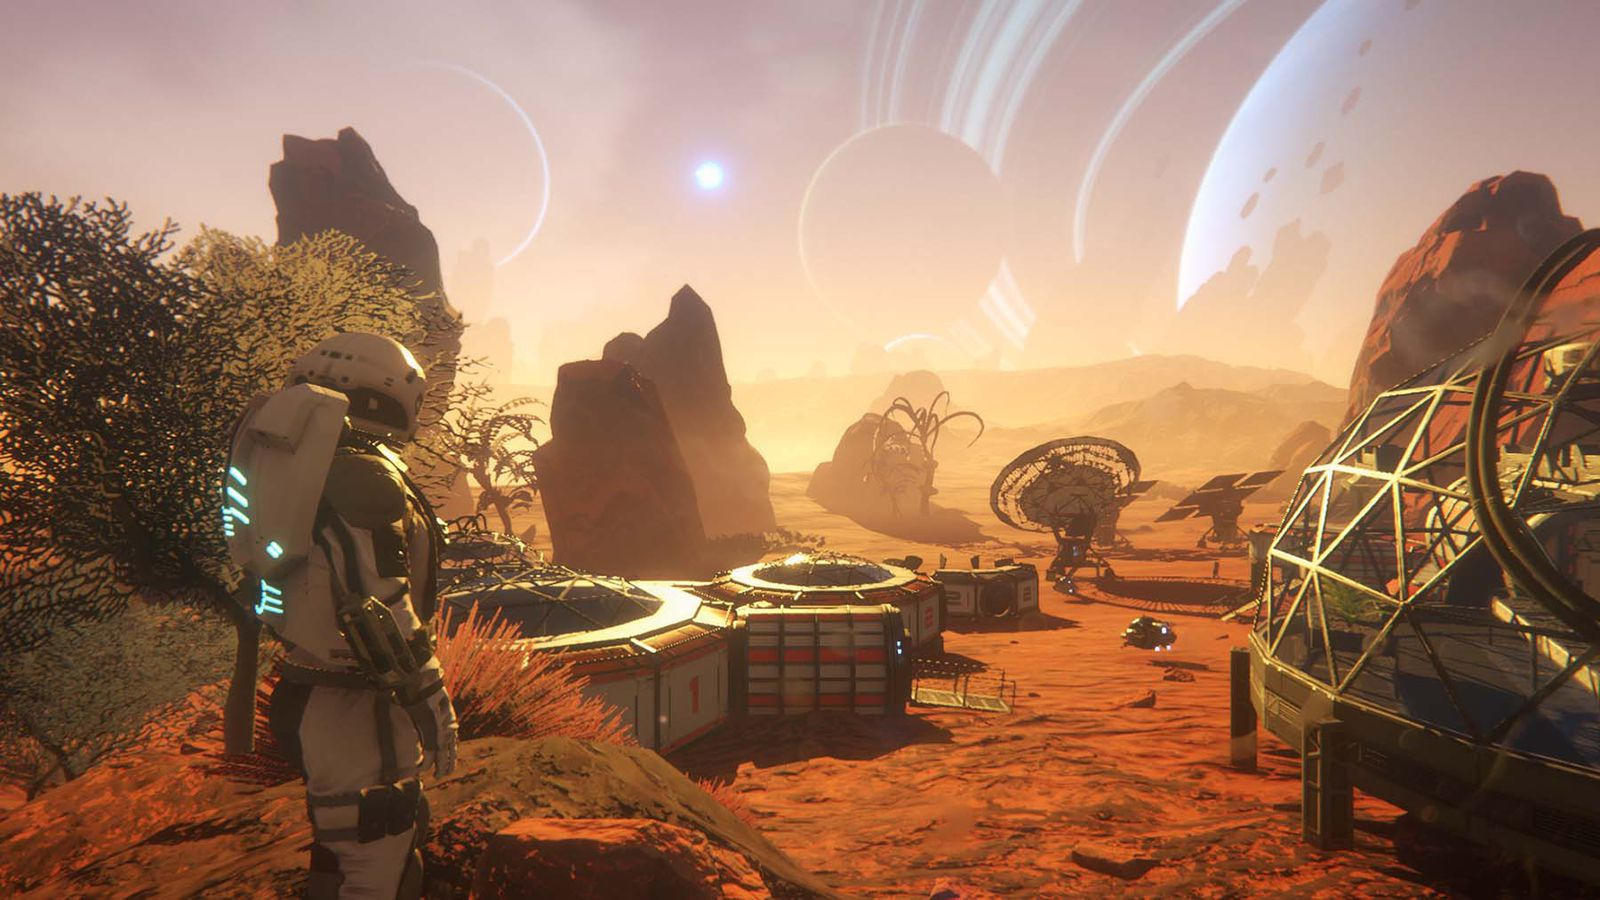 3d Wallpaper Designs For Hall Multiplayer Survival Game Osiris New Dawn May Be Steam S